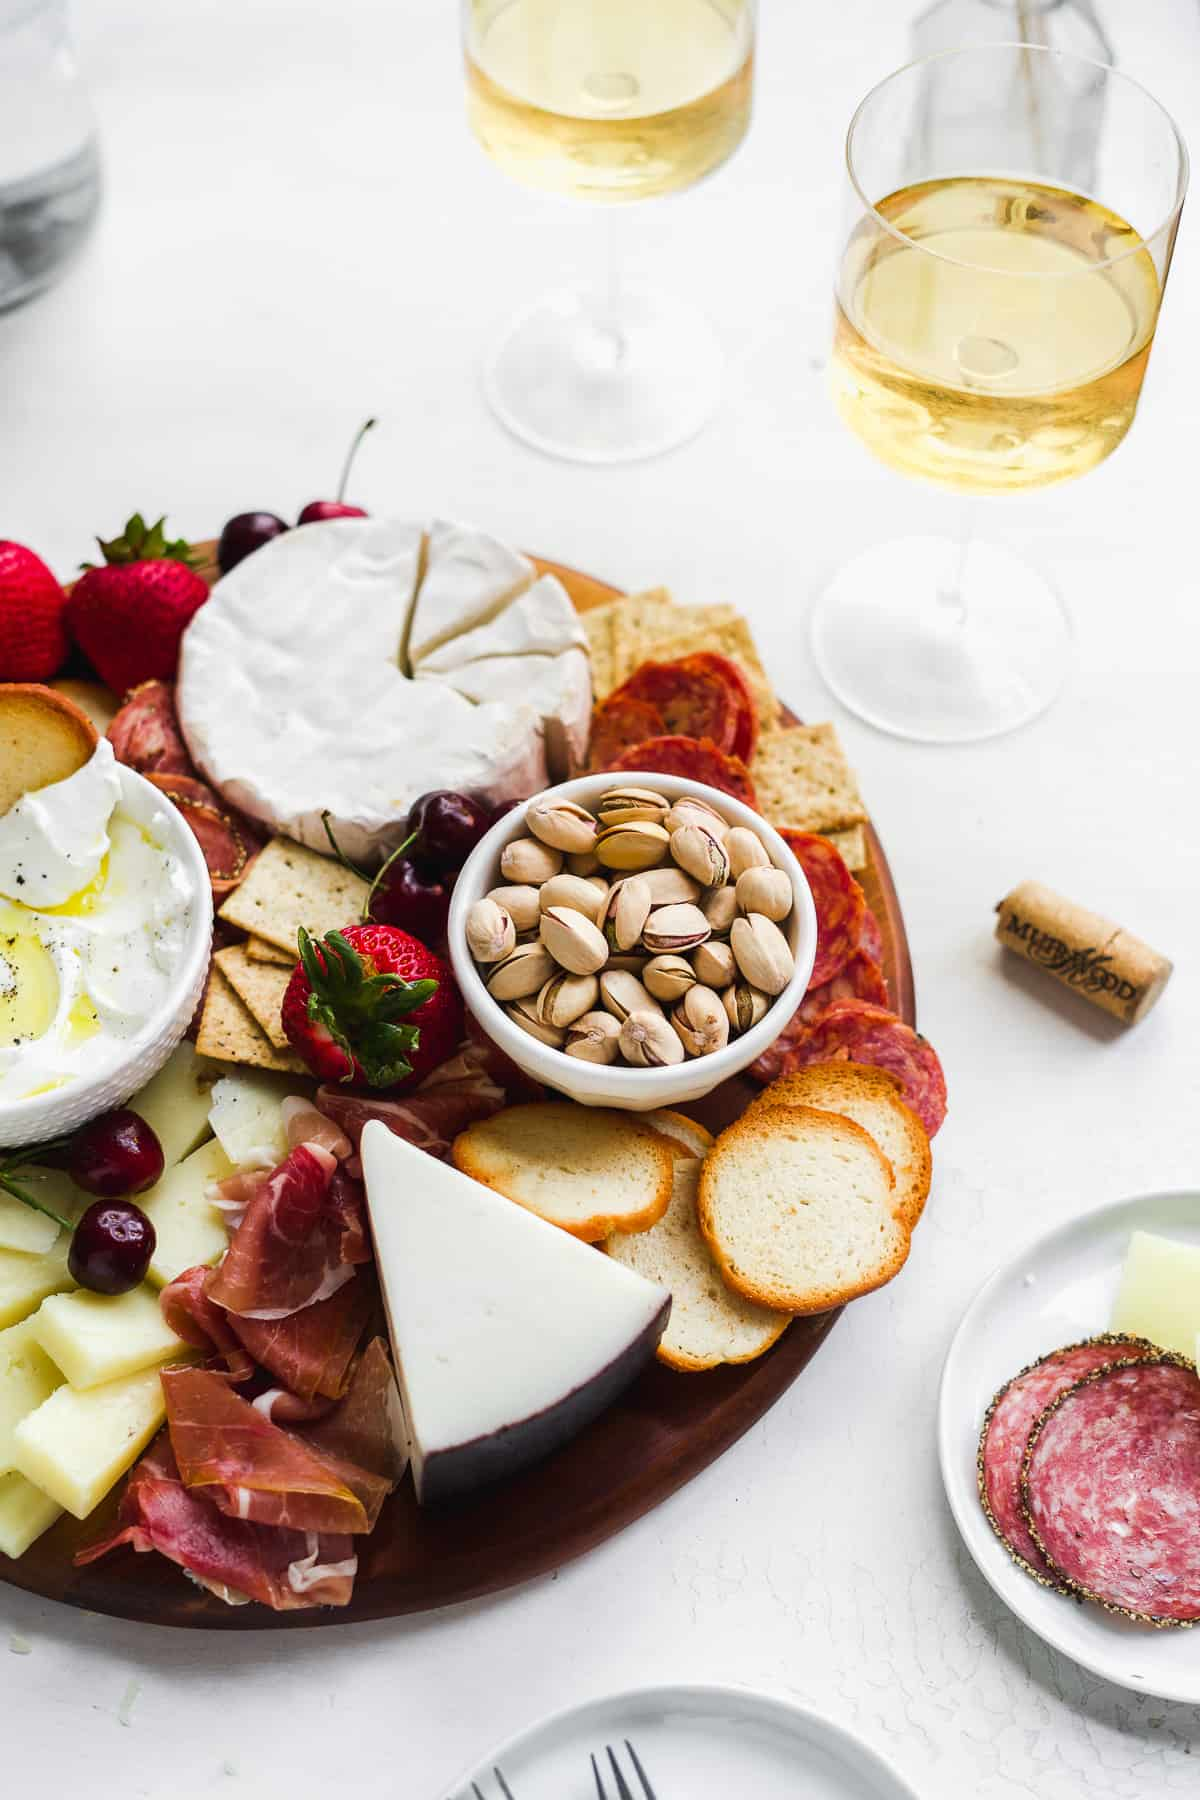 Charcuterie board with nuts and fruit and wine glasses in the background.